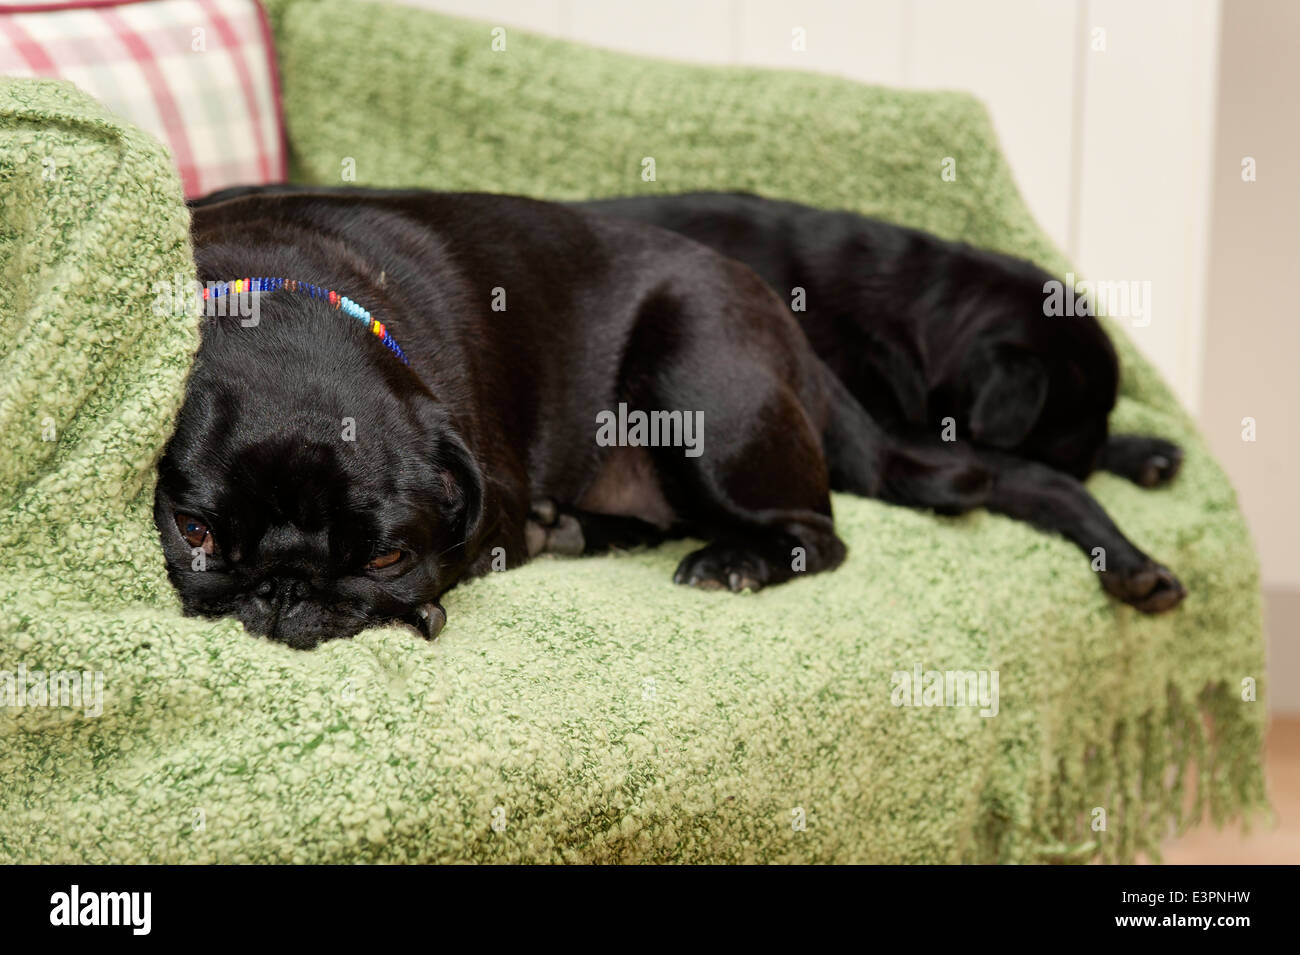 Pair of pugs sleeping on a green blanket - Stock Image